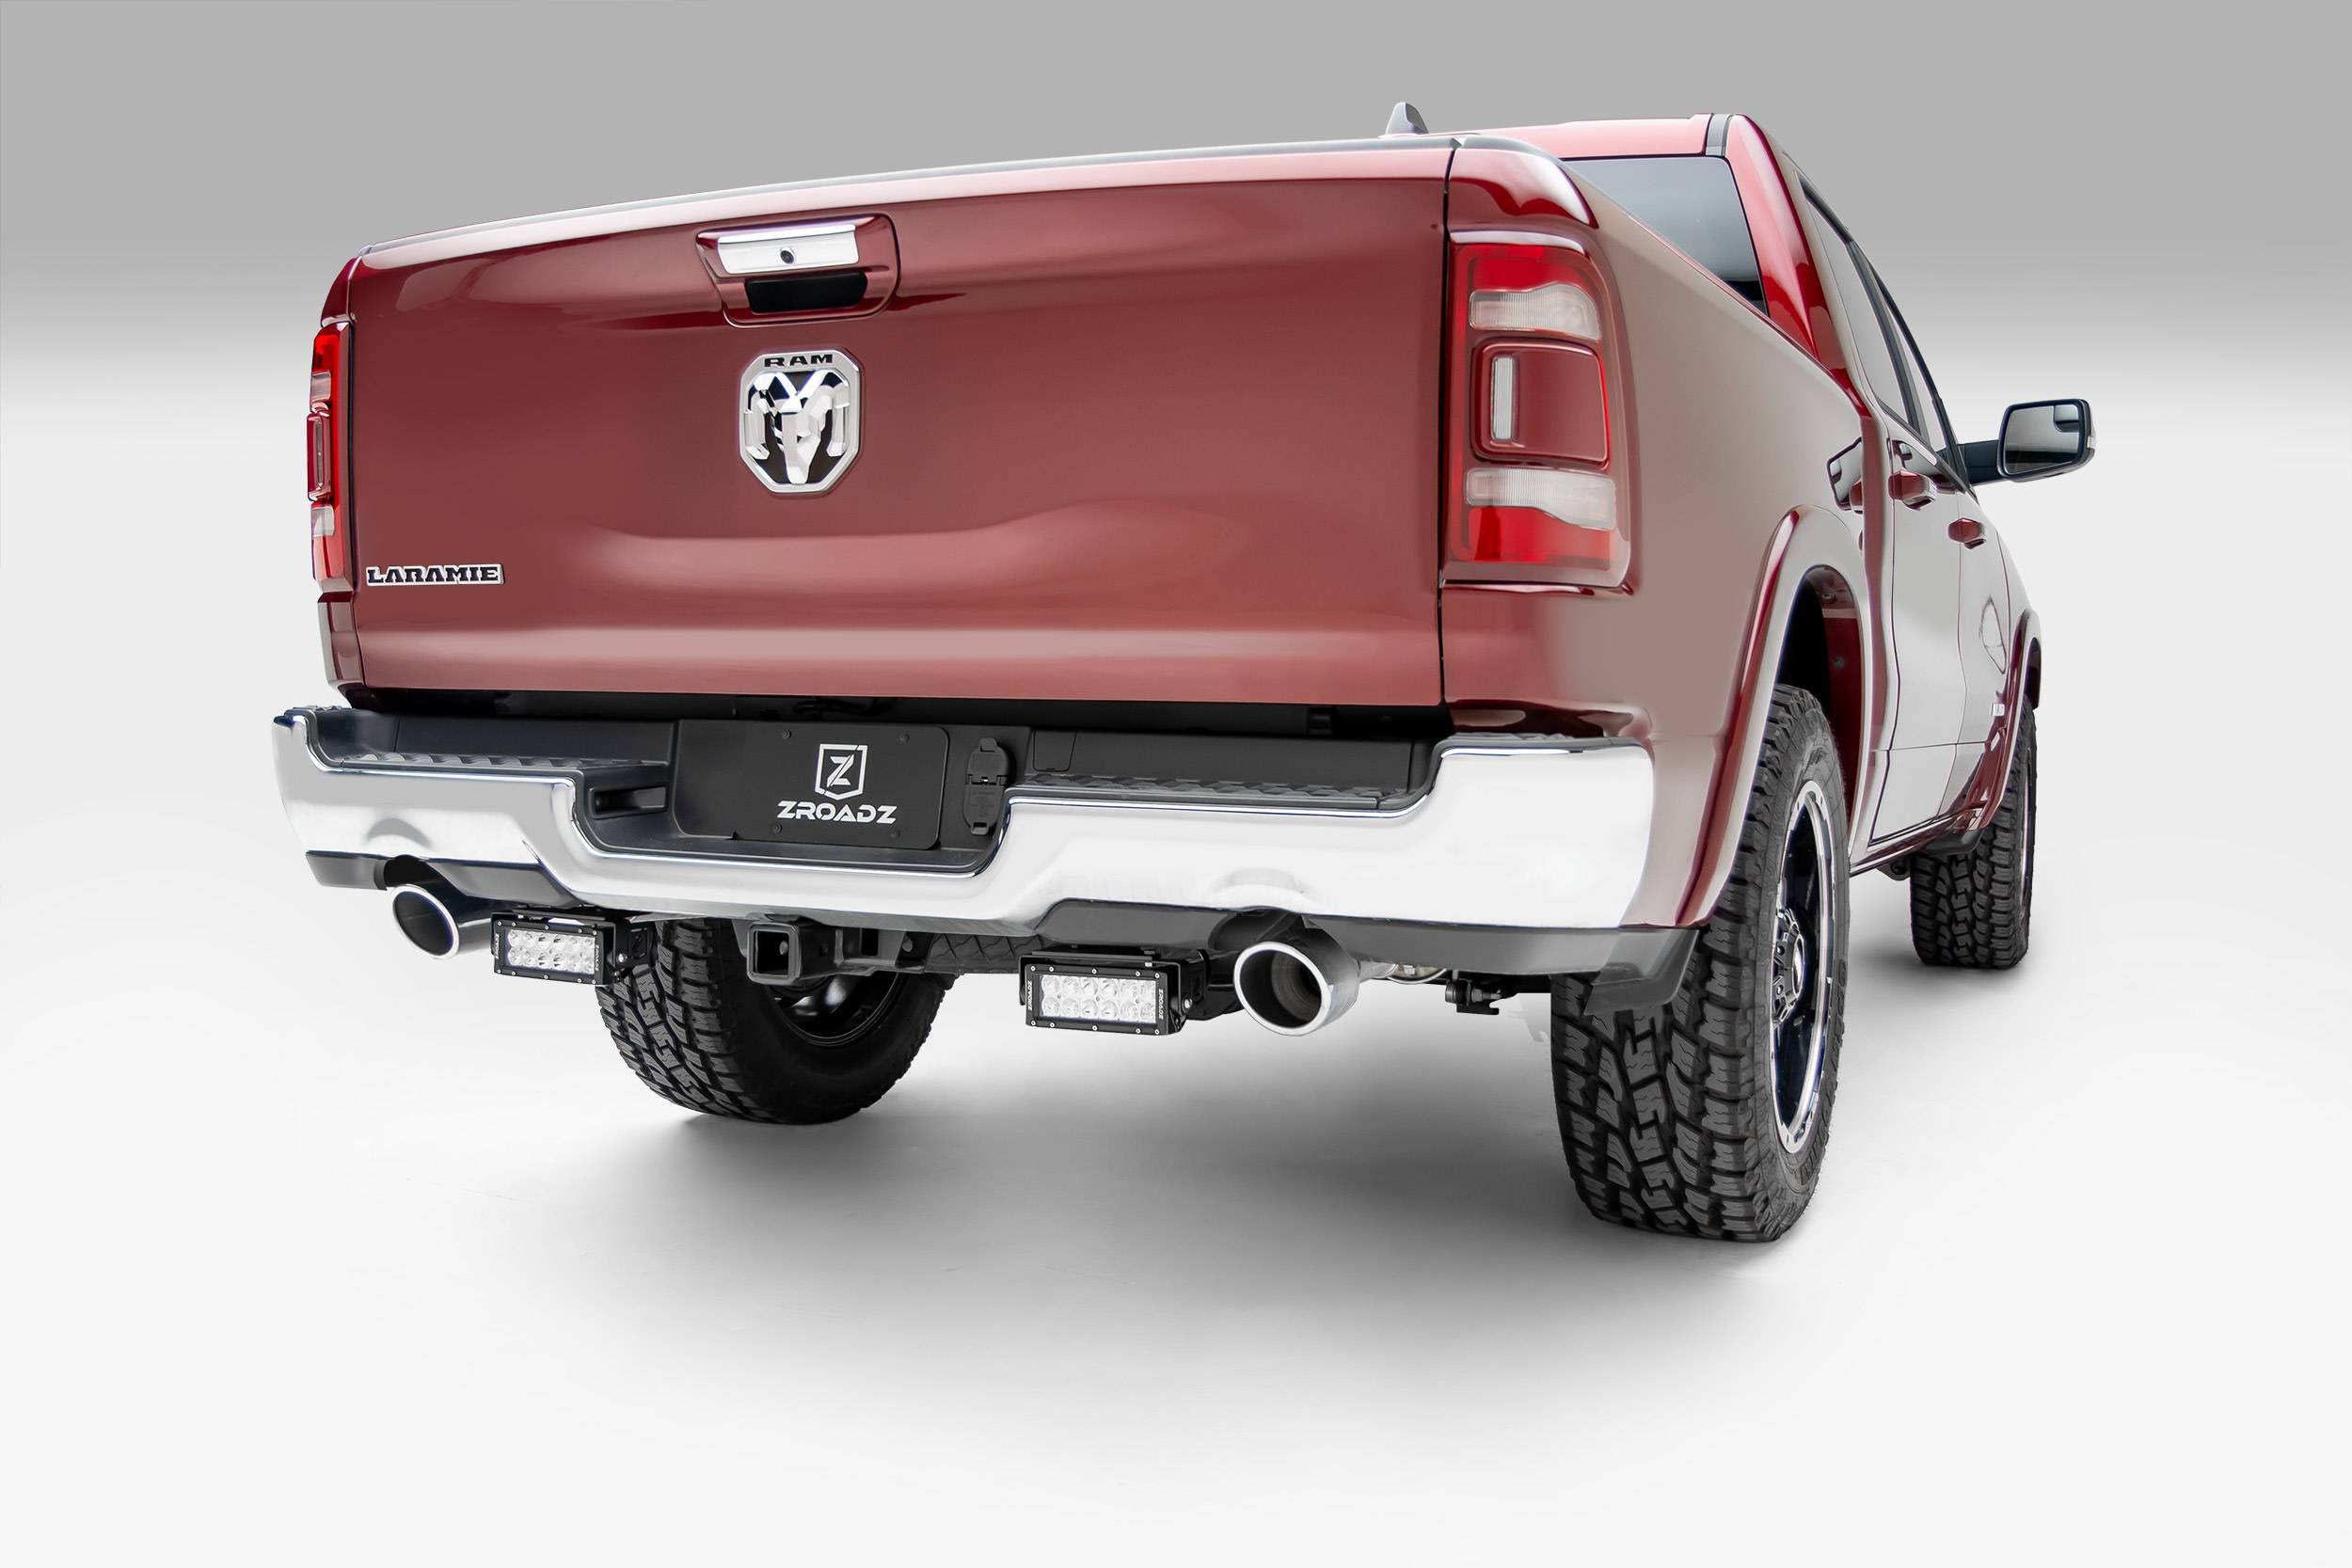 2019 Ram 1500 Rear Bumper LED Kit, Incl. (2) 6 Inch LED Straight Double Row Light Bars - PN #Z384721-KIT